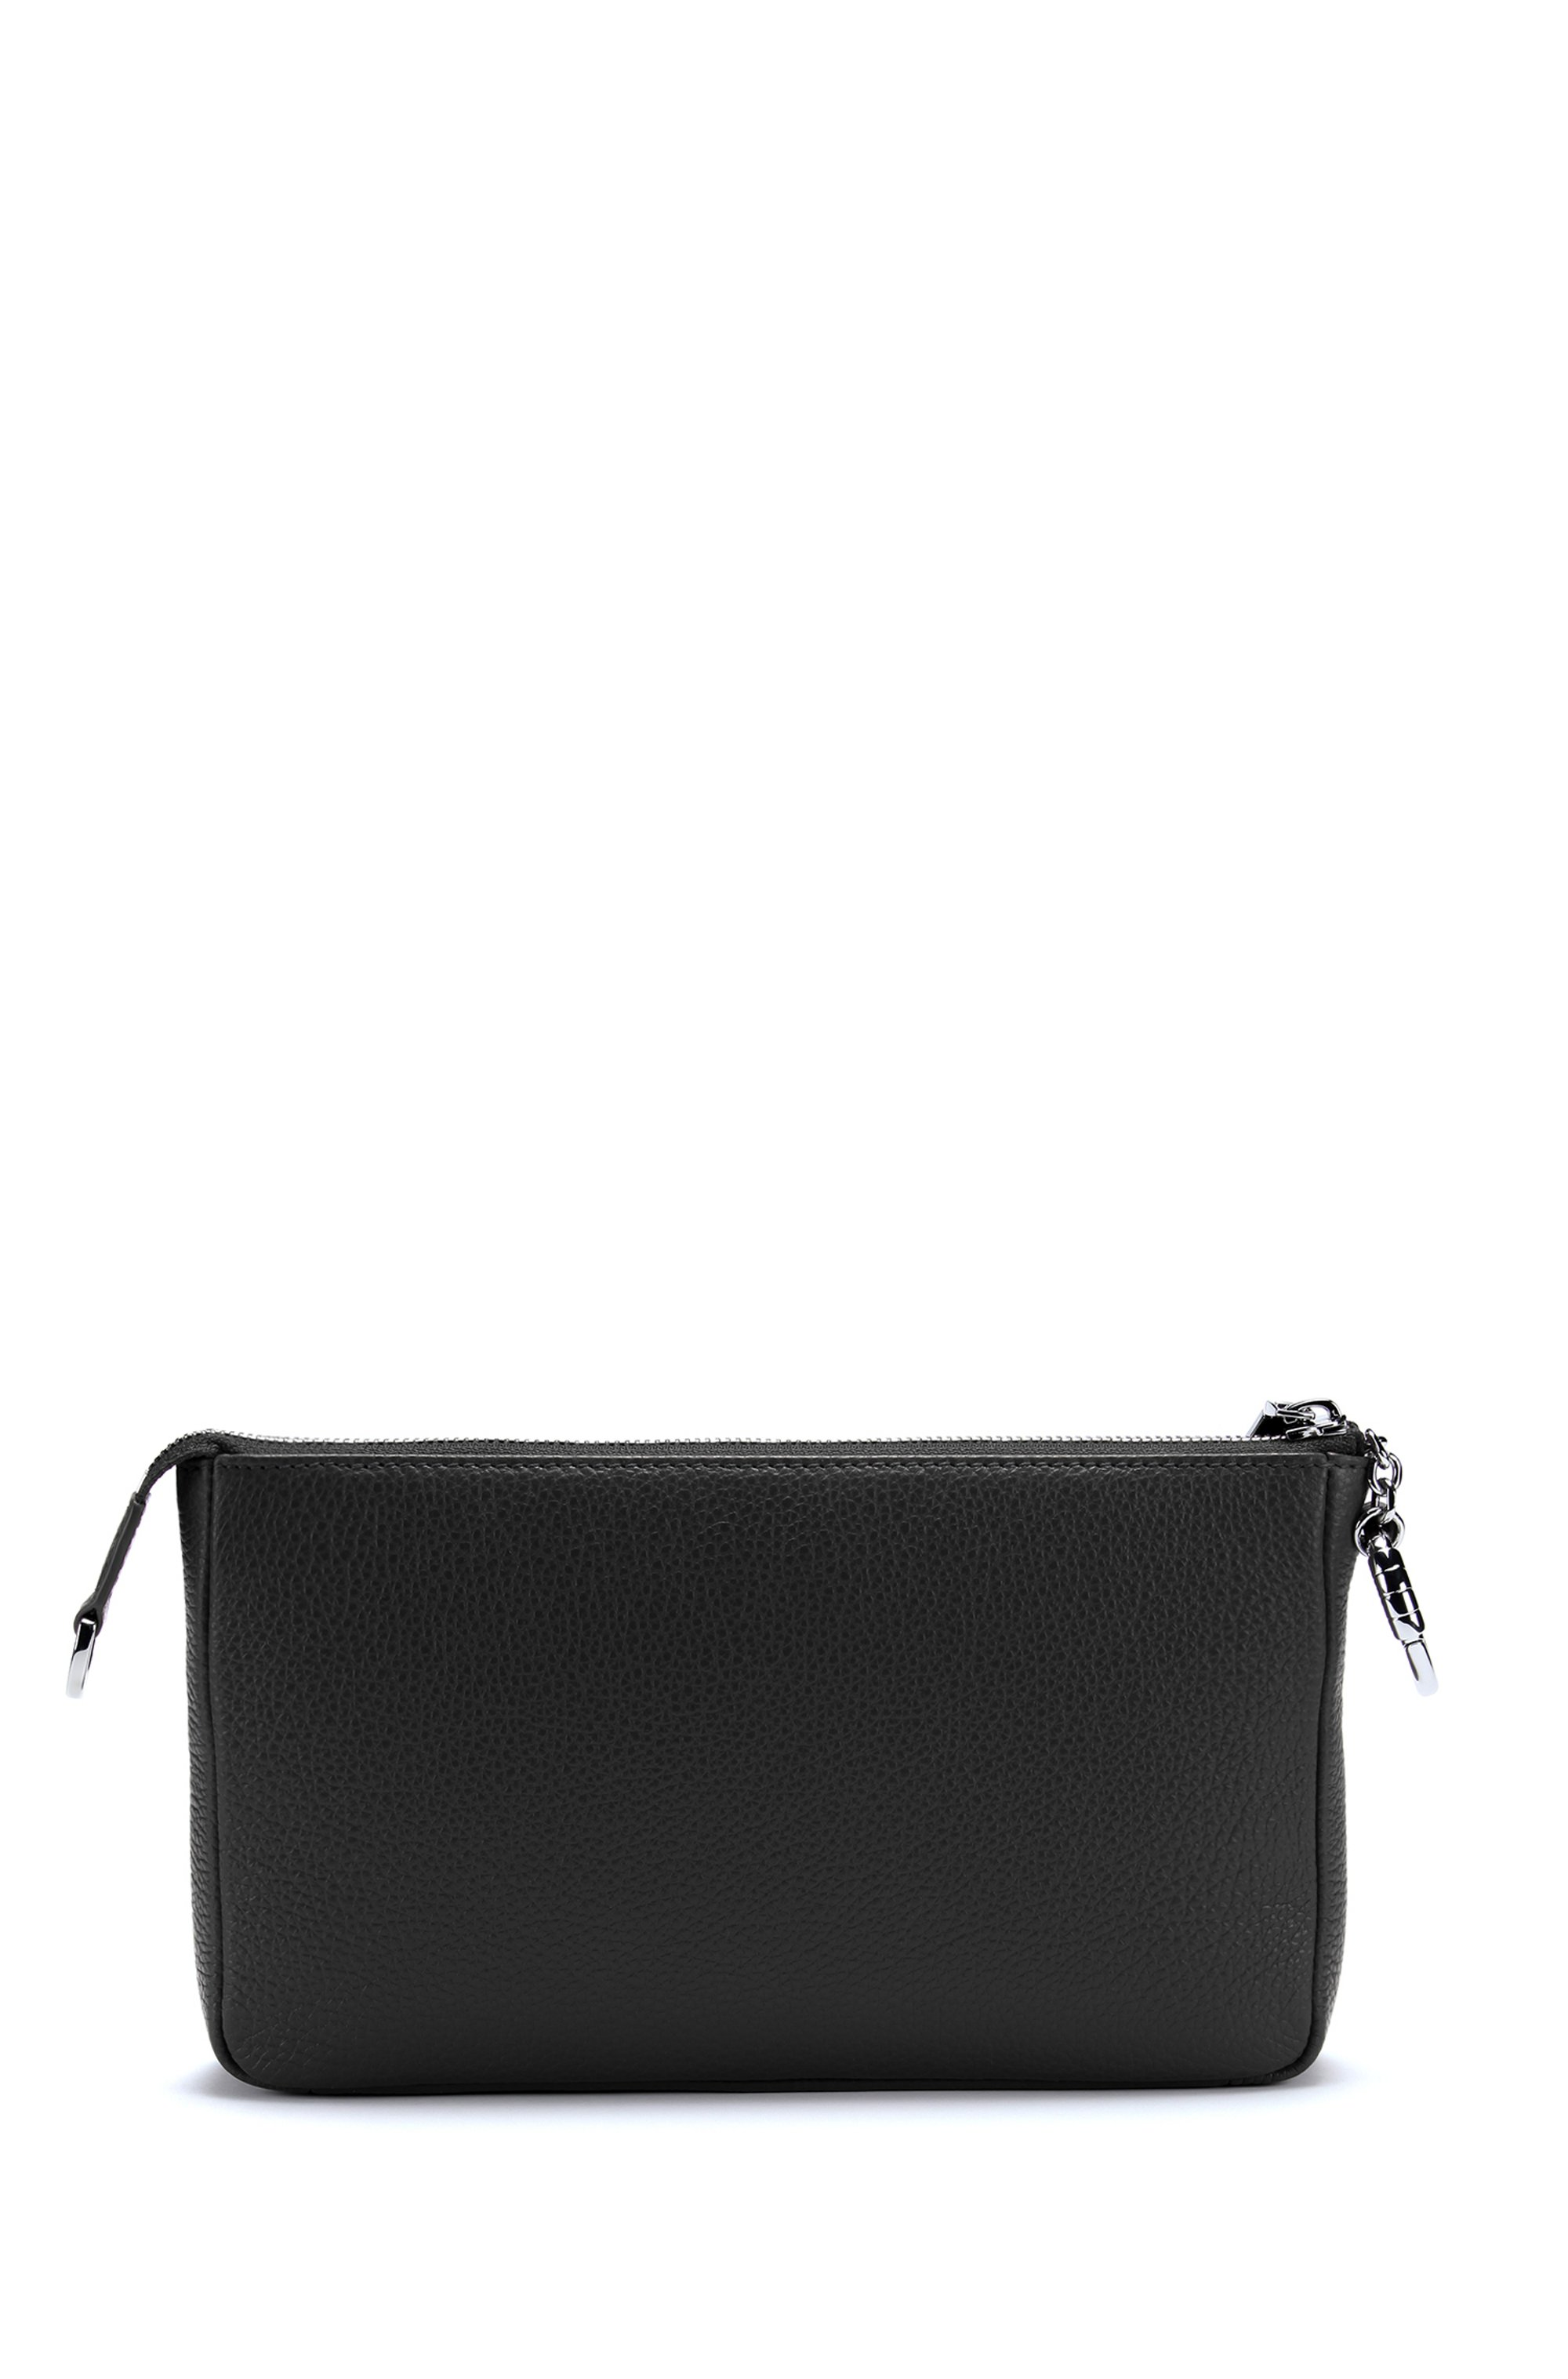 Grainy leather mini bag with polished chain strap